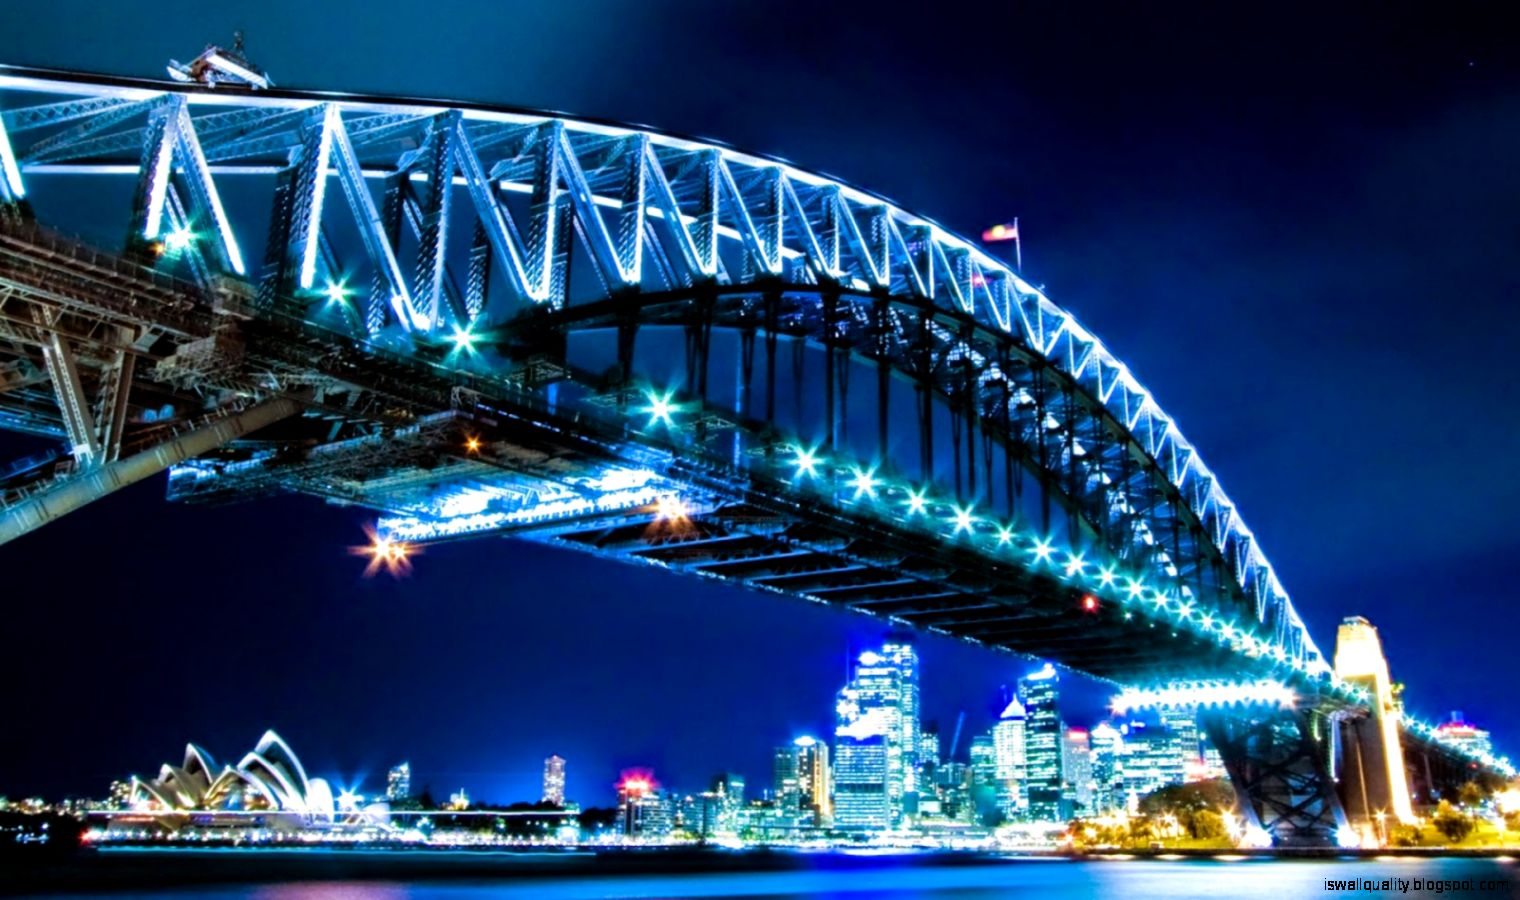 Sydney Beautiful Place Hd Wallpaper Wallpapers Quality